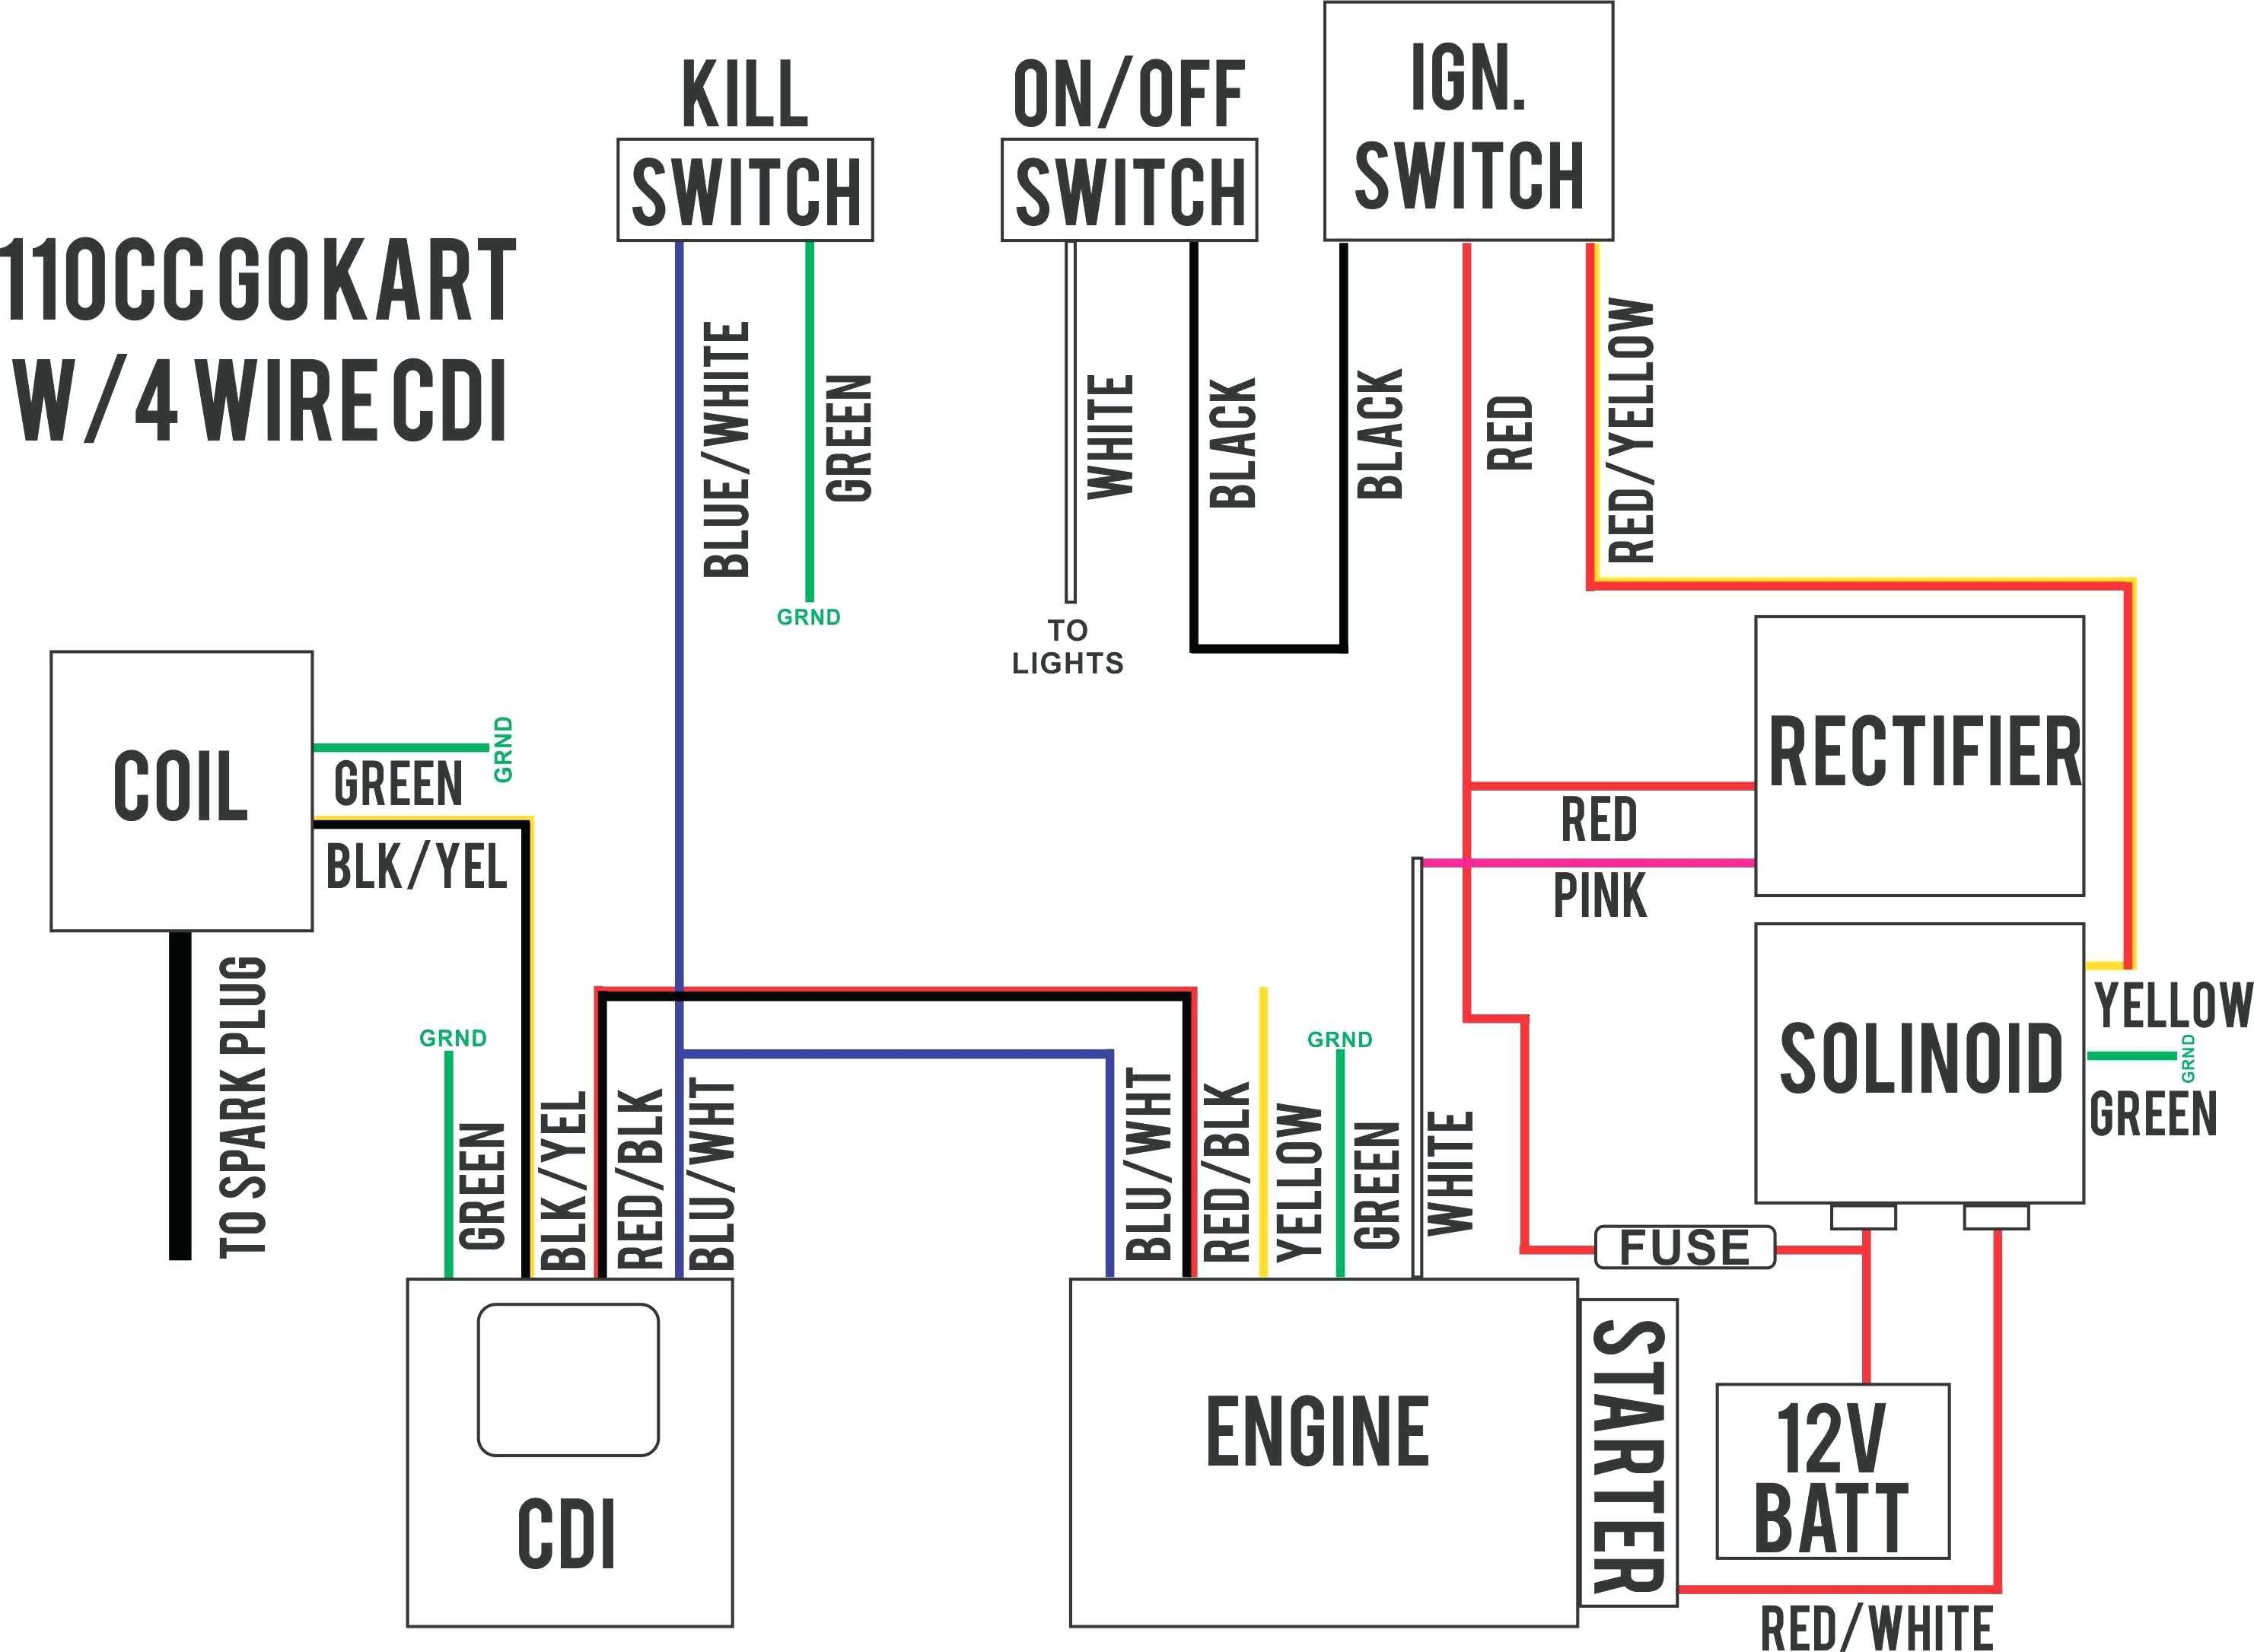 110 Volt Wiring Colors Introduction To Electrical Wiring Diagrams \u2022  Power Cord Color Code 110v Wire Color Code